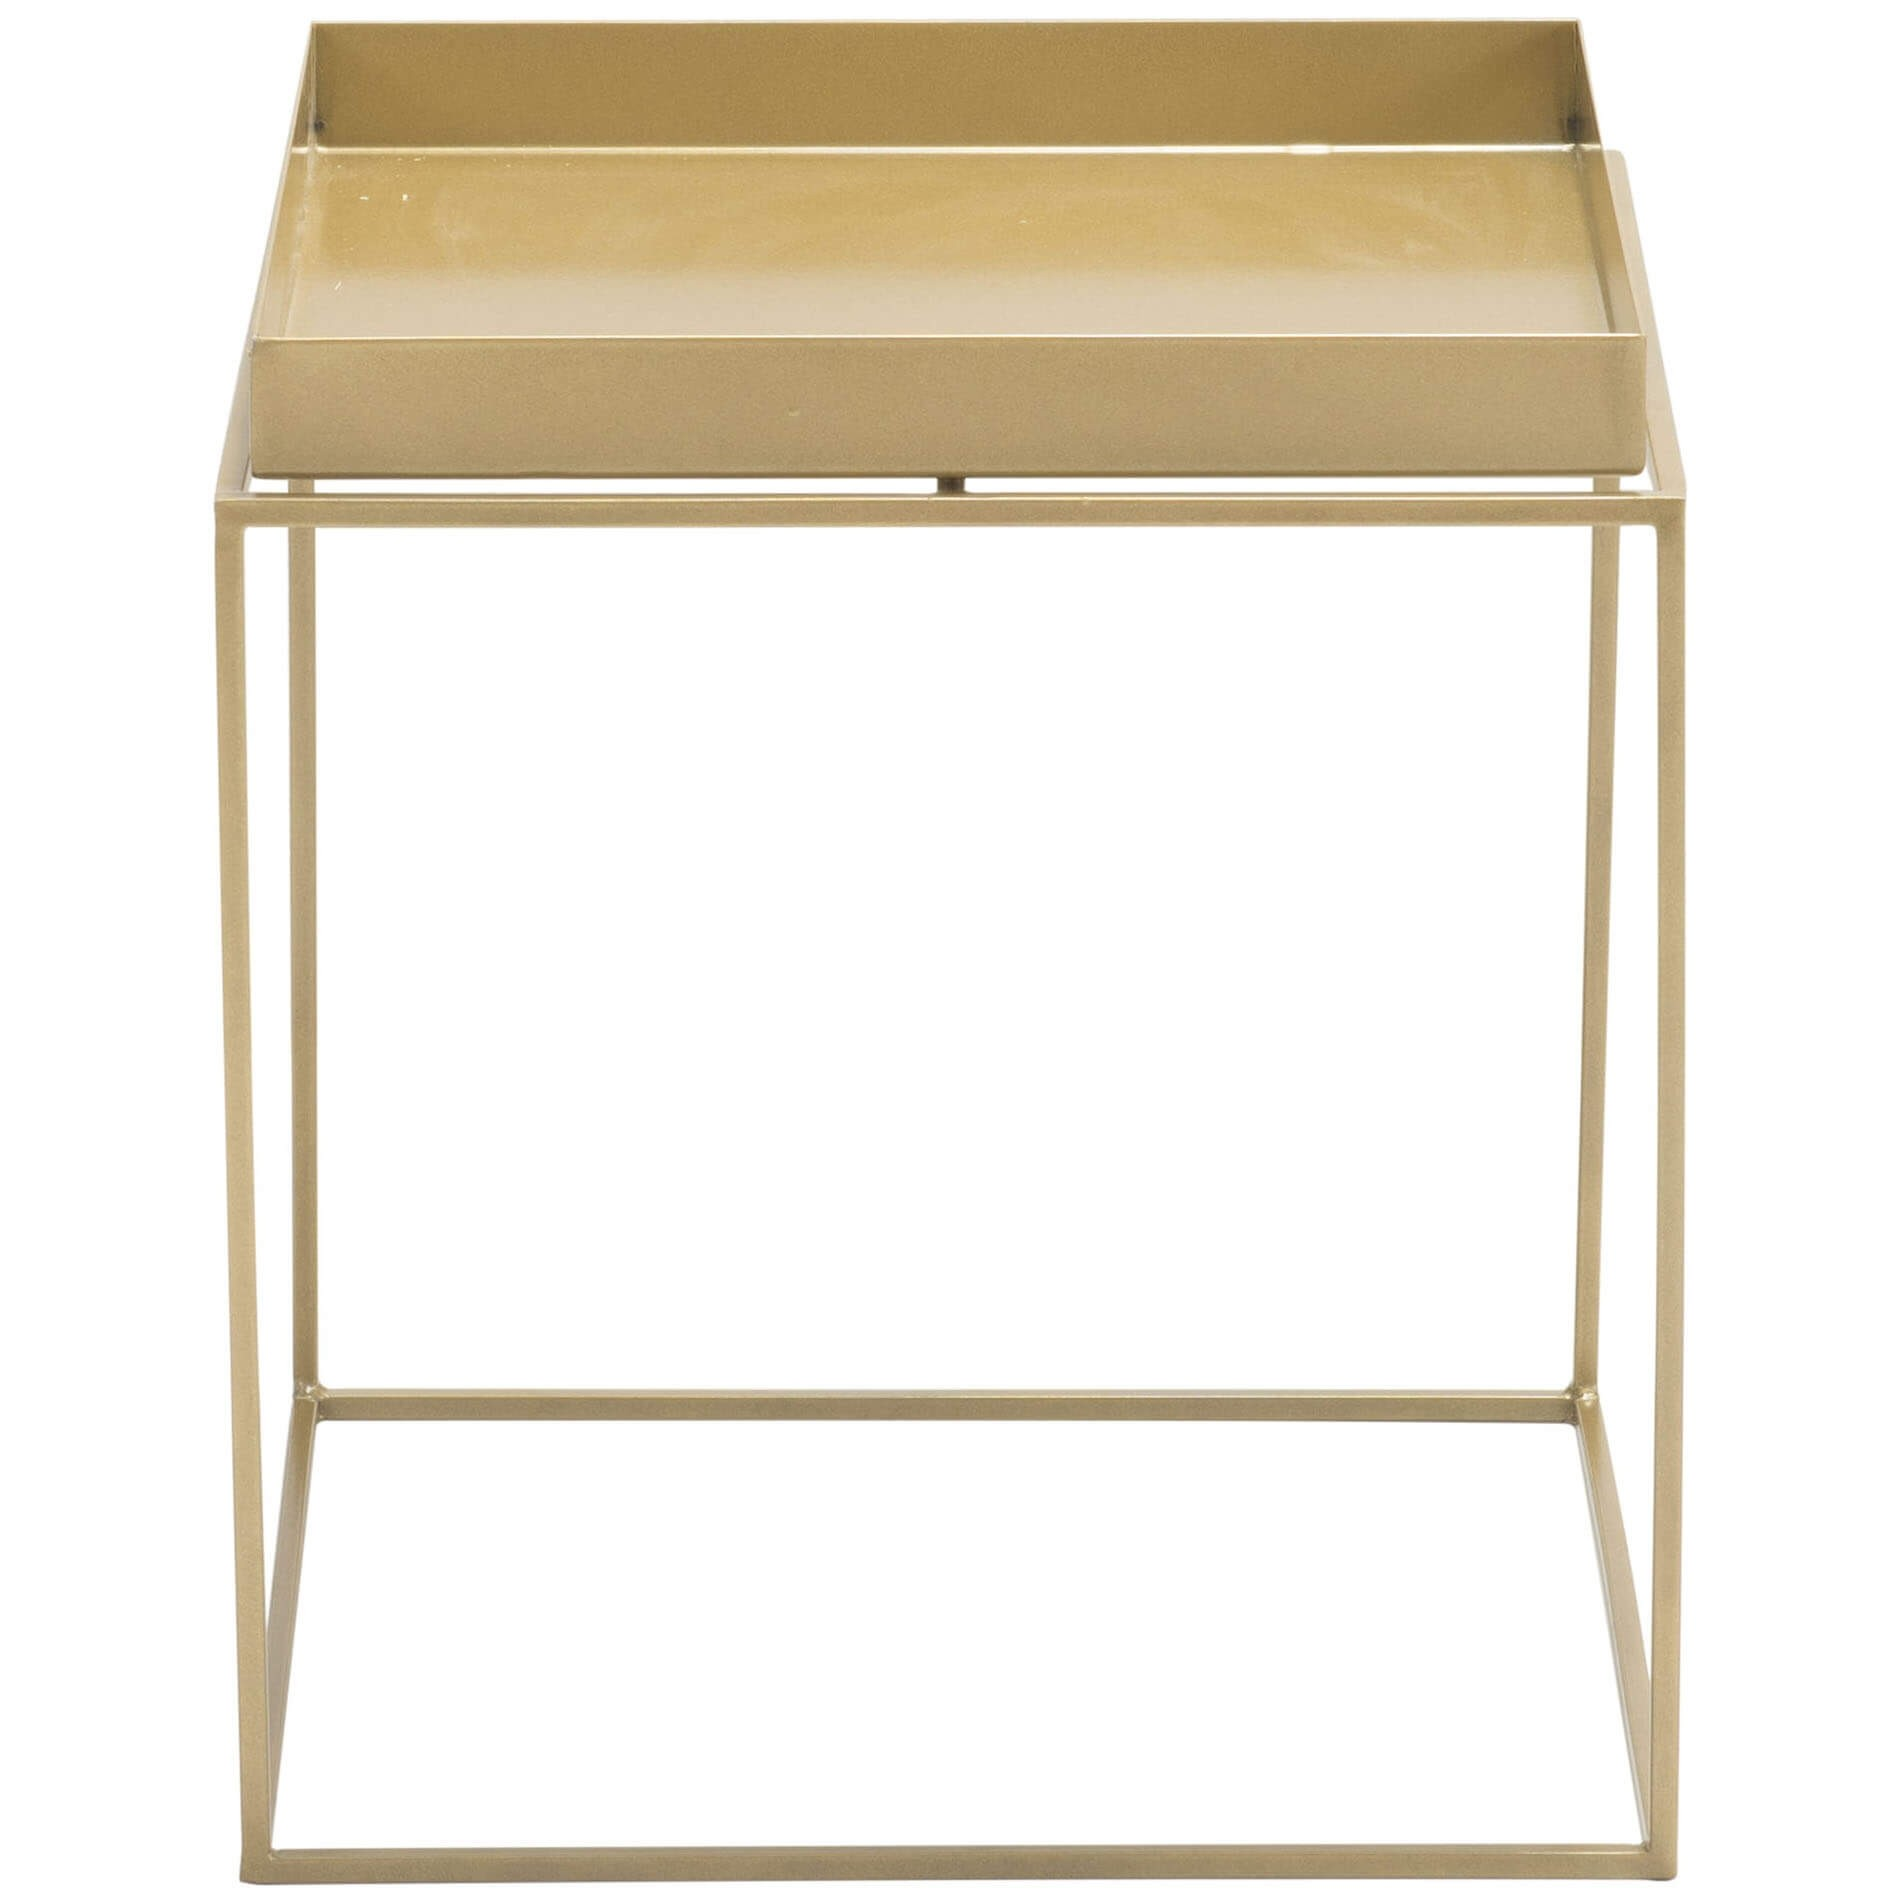 gaia nesting table gold accent tables outdoor furniture with drawer unique end antique side shelf metal hairpin legs real marble top coffee small corner for hallway bronze painted